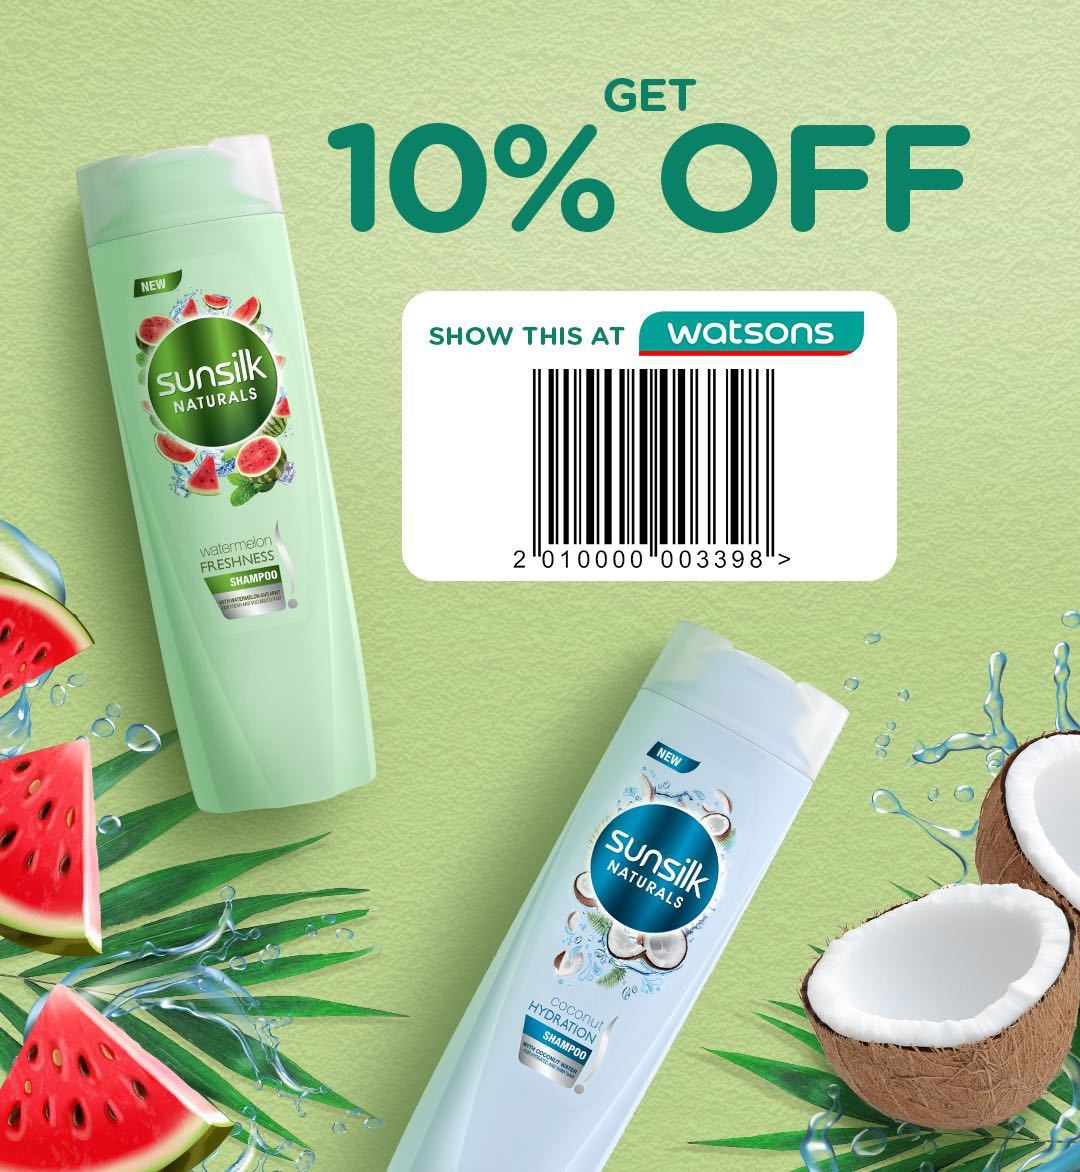 All Things Hair Summer Sale: Watsons Coupon for Sunsilk